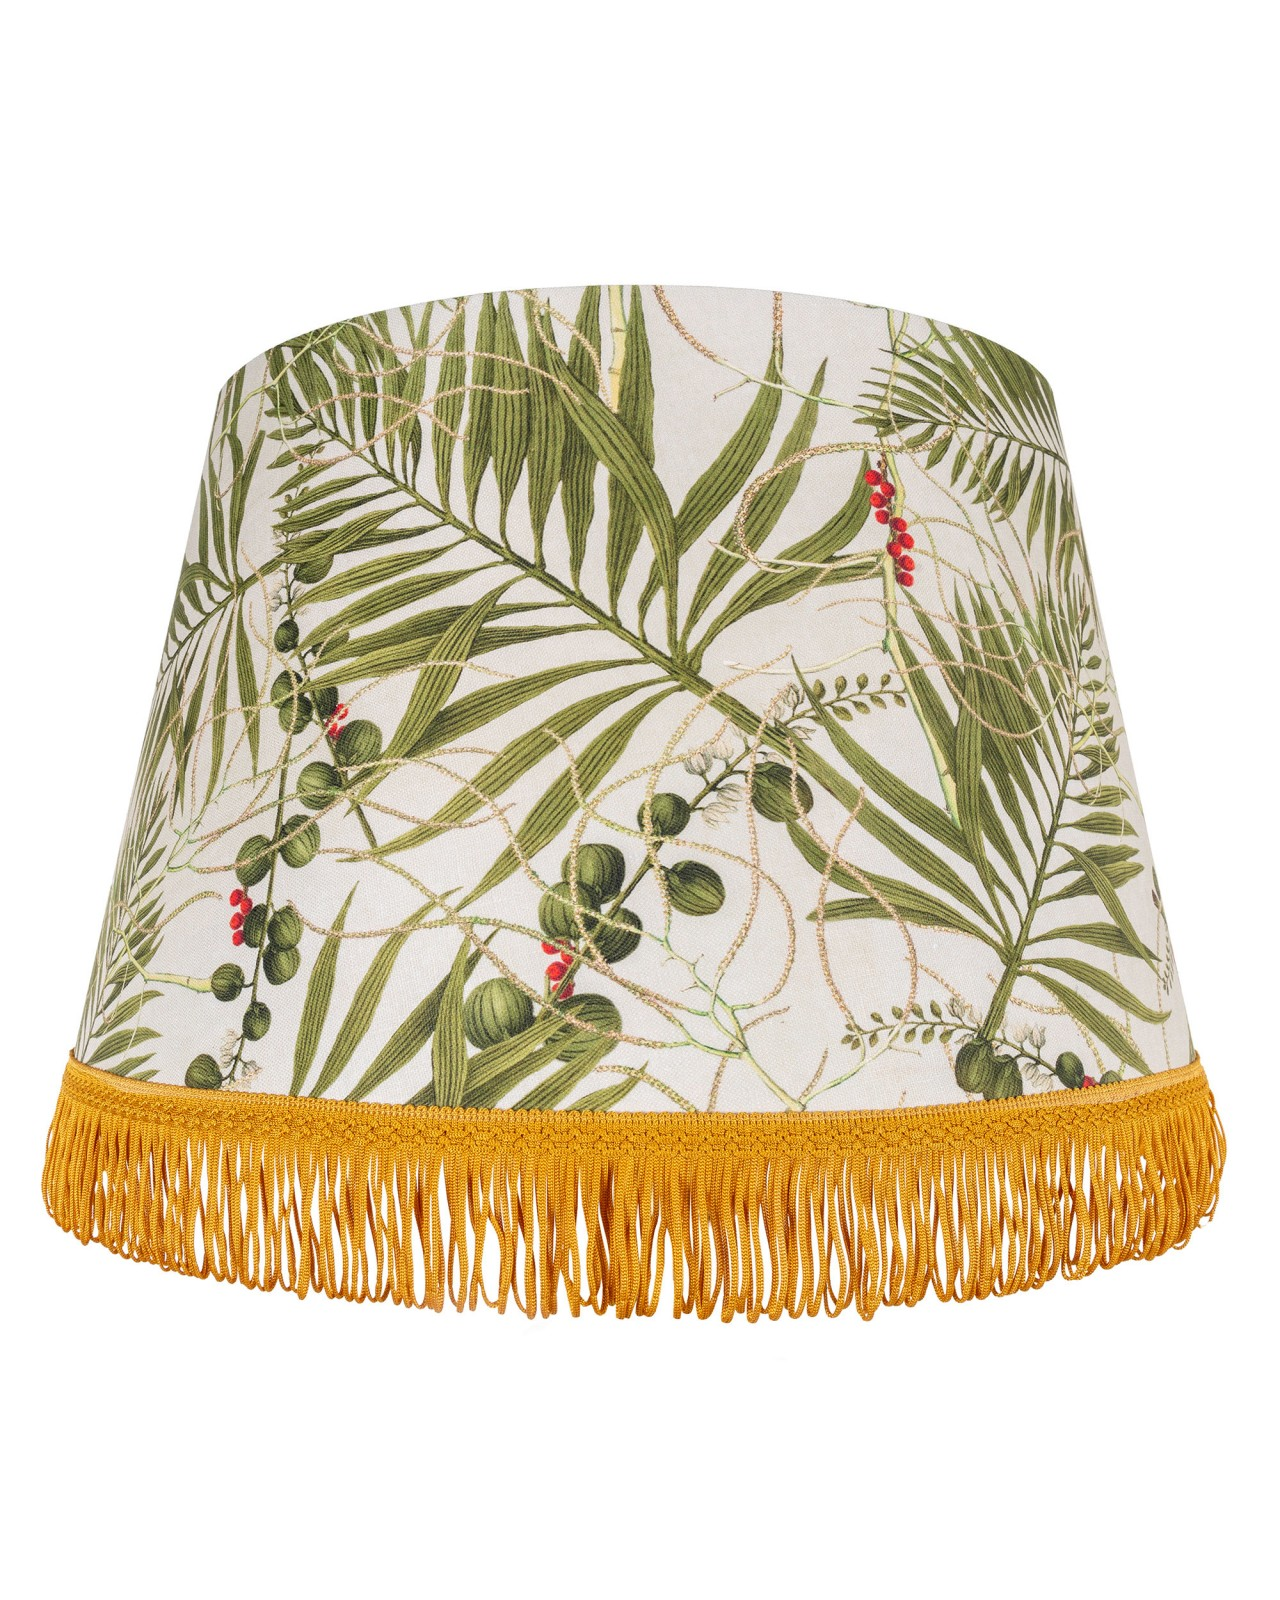 TROPICAL GARDEN Lampshade